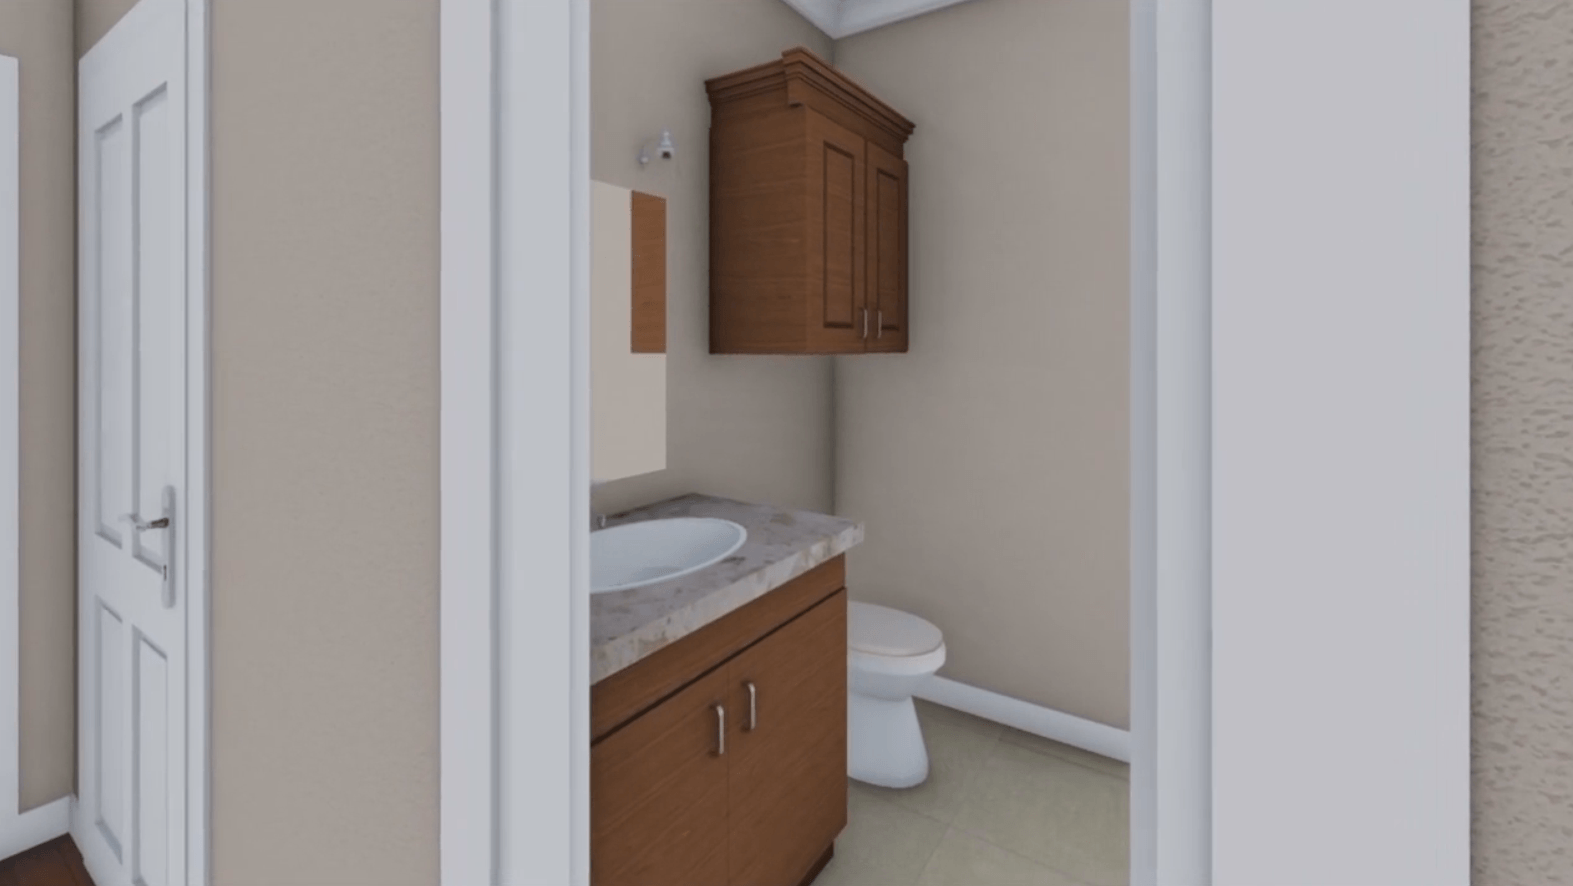 HPG-1888B-1 toilet in home plans